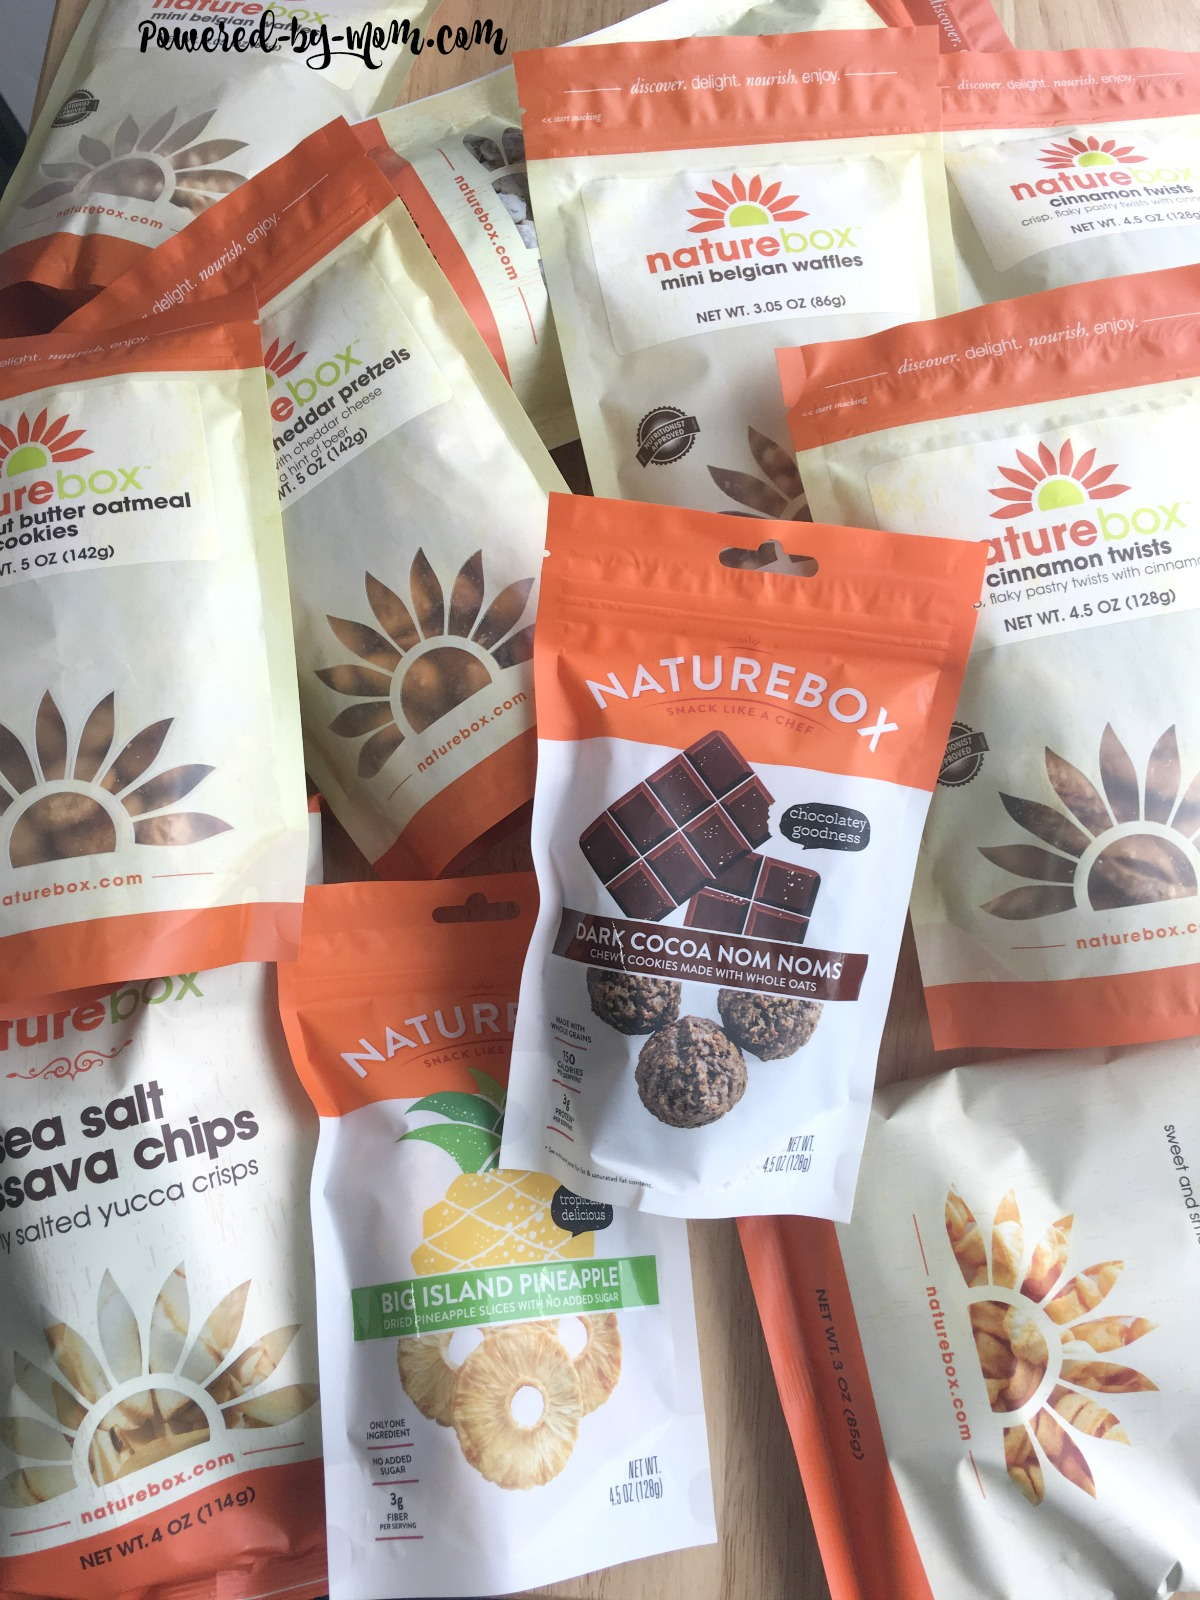 Naturebox Offers a Variety of Healthy Snacks Everyone Will Devour